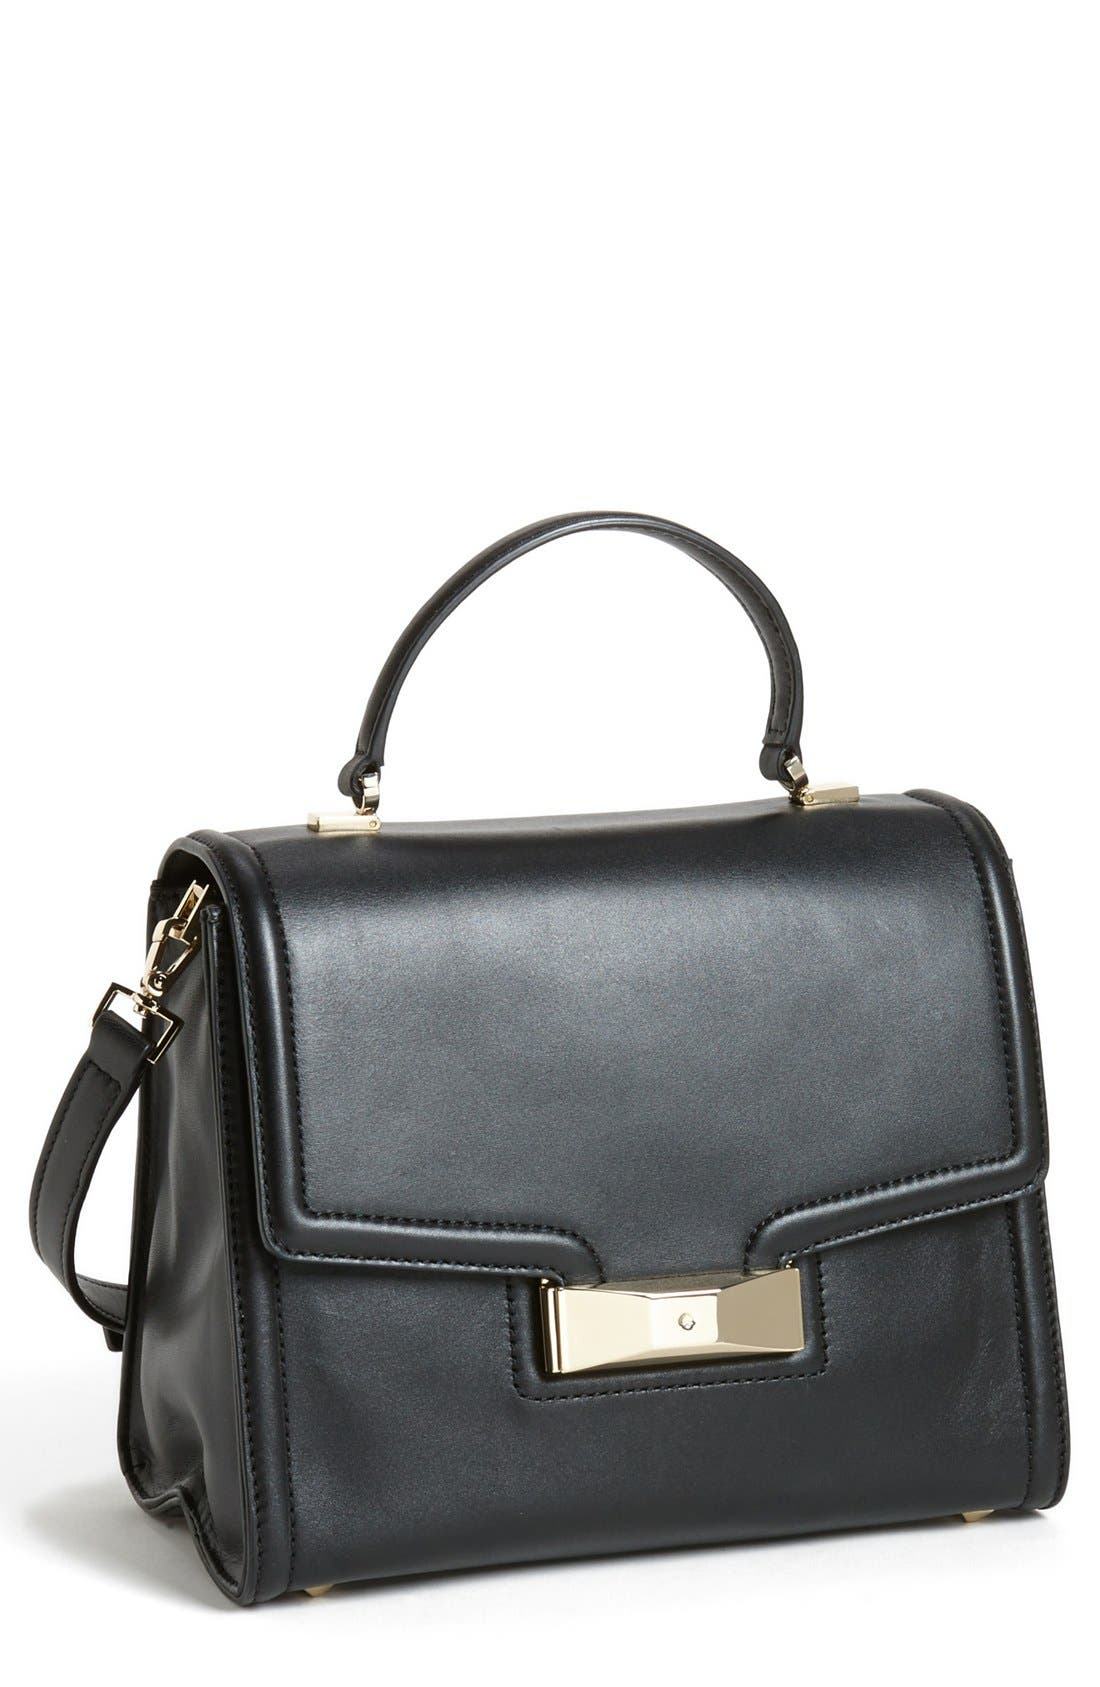 Main Image - kate spade new york 'carroll park - penelope' leather satchel